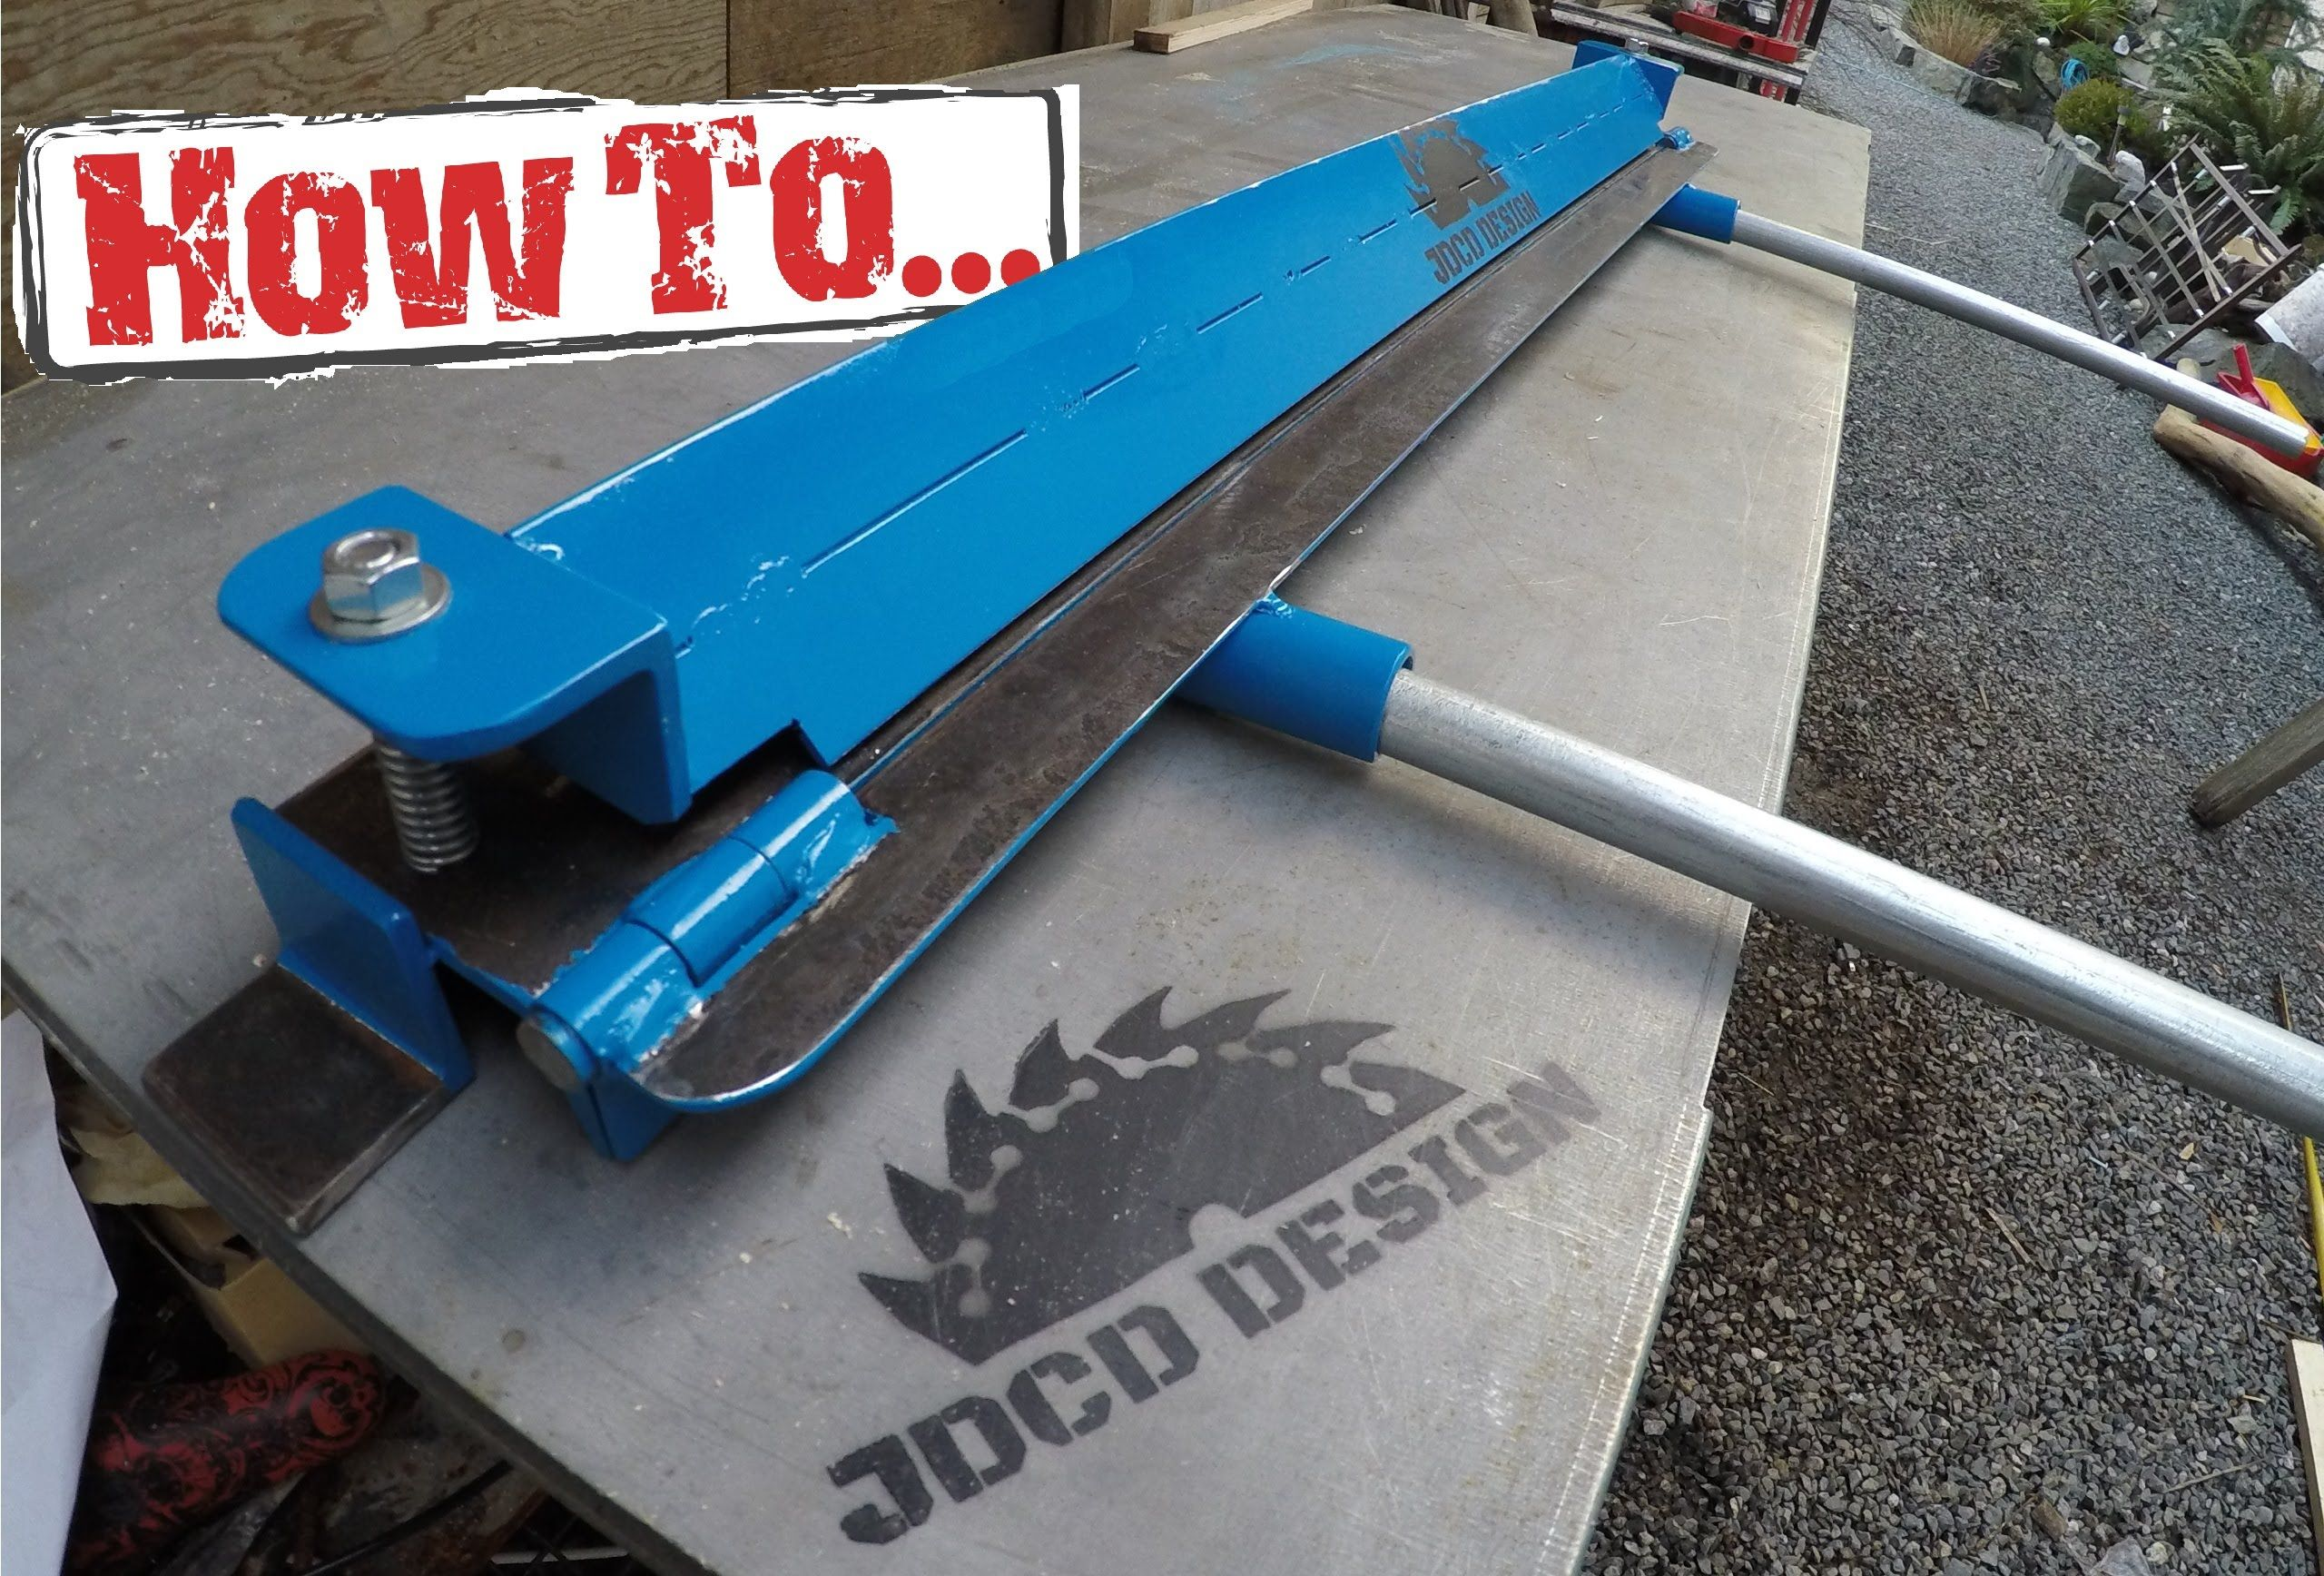 How To Home Made Sheet Metal Brake Built On A Budget Sheet Metal Brake Sheet Metal Sheet Metal Bender